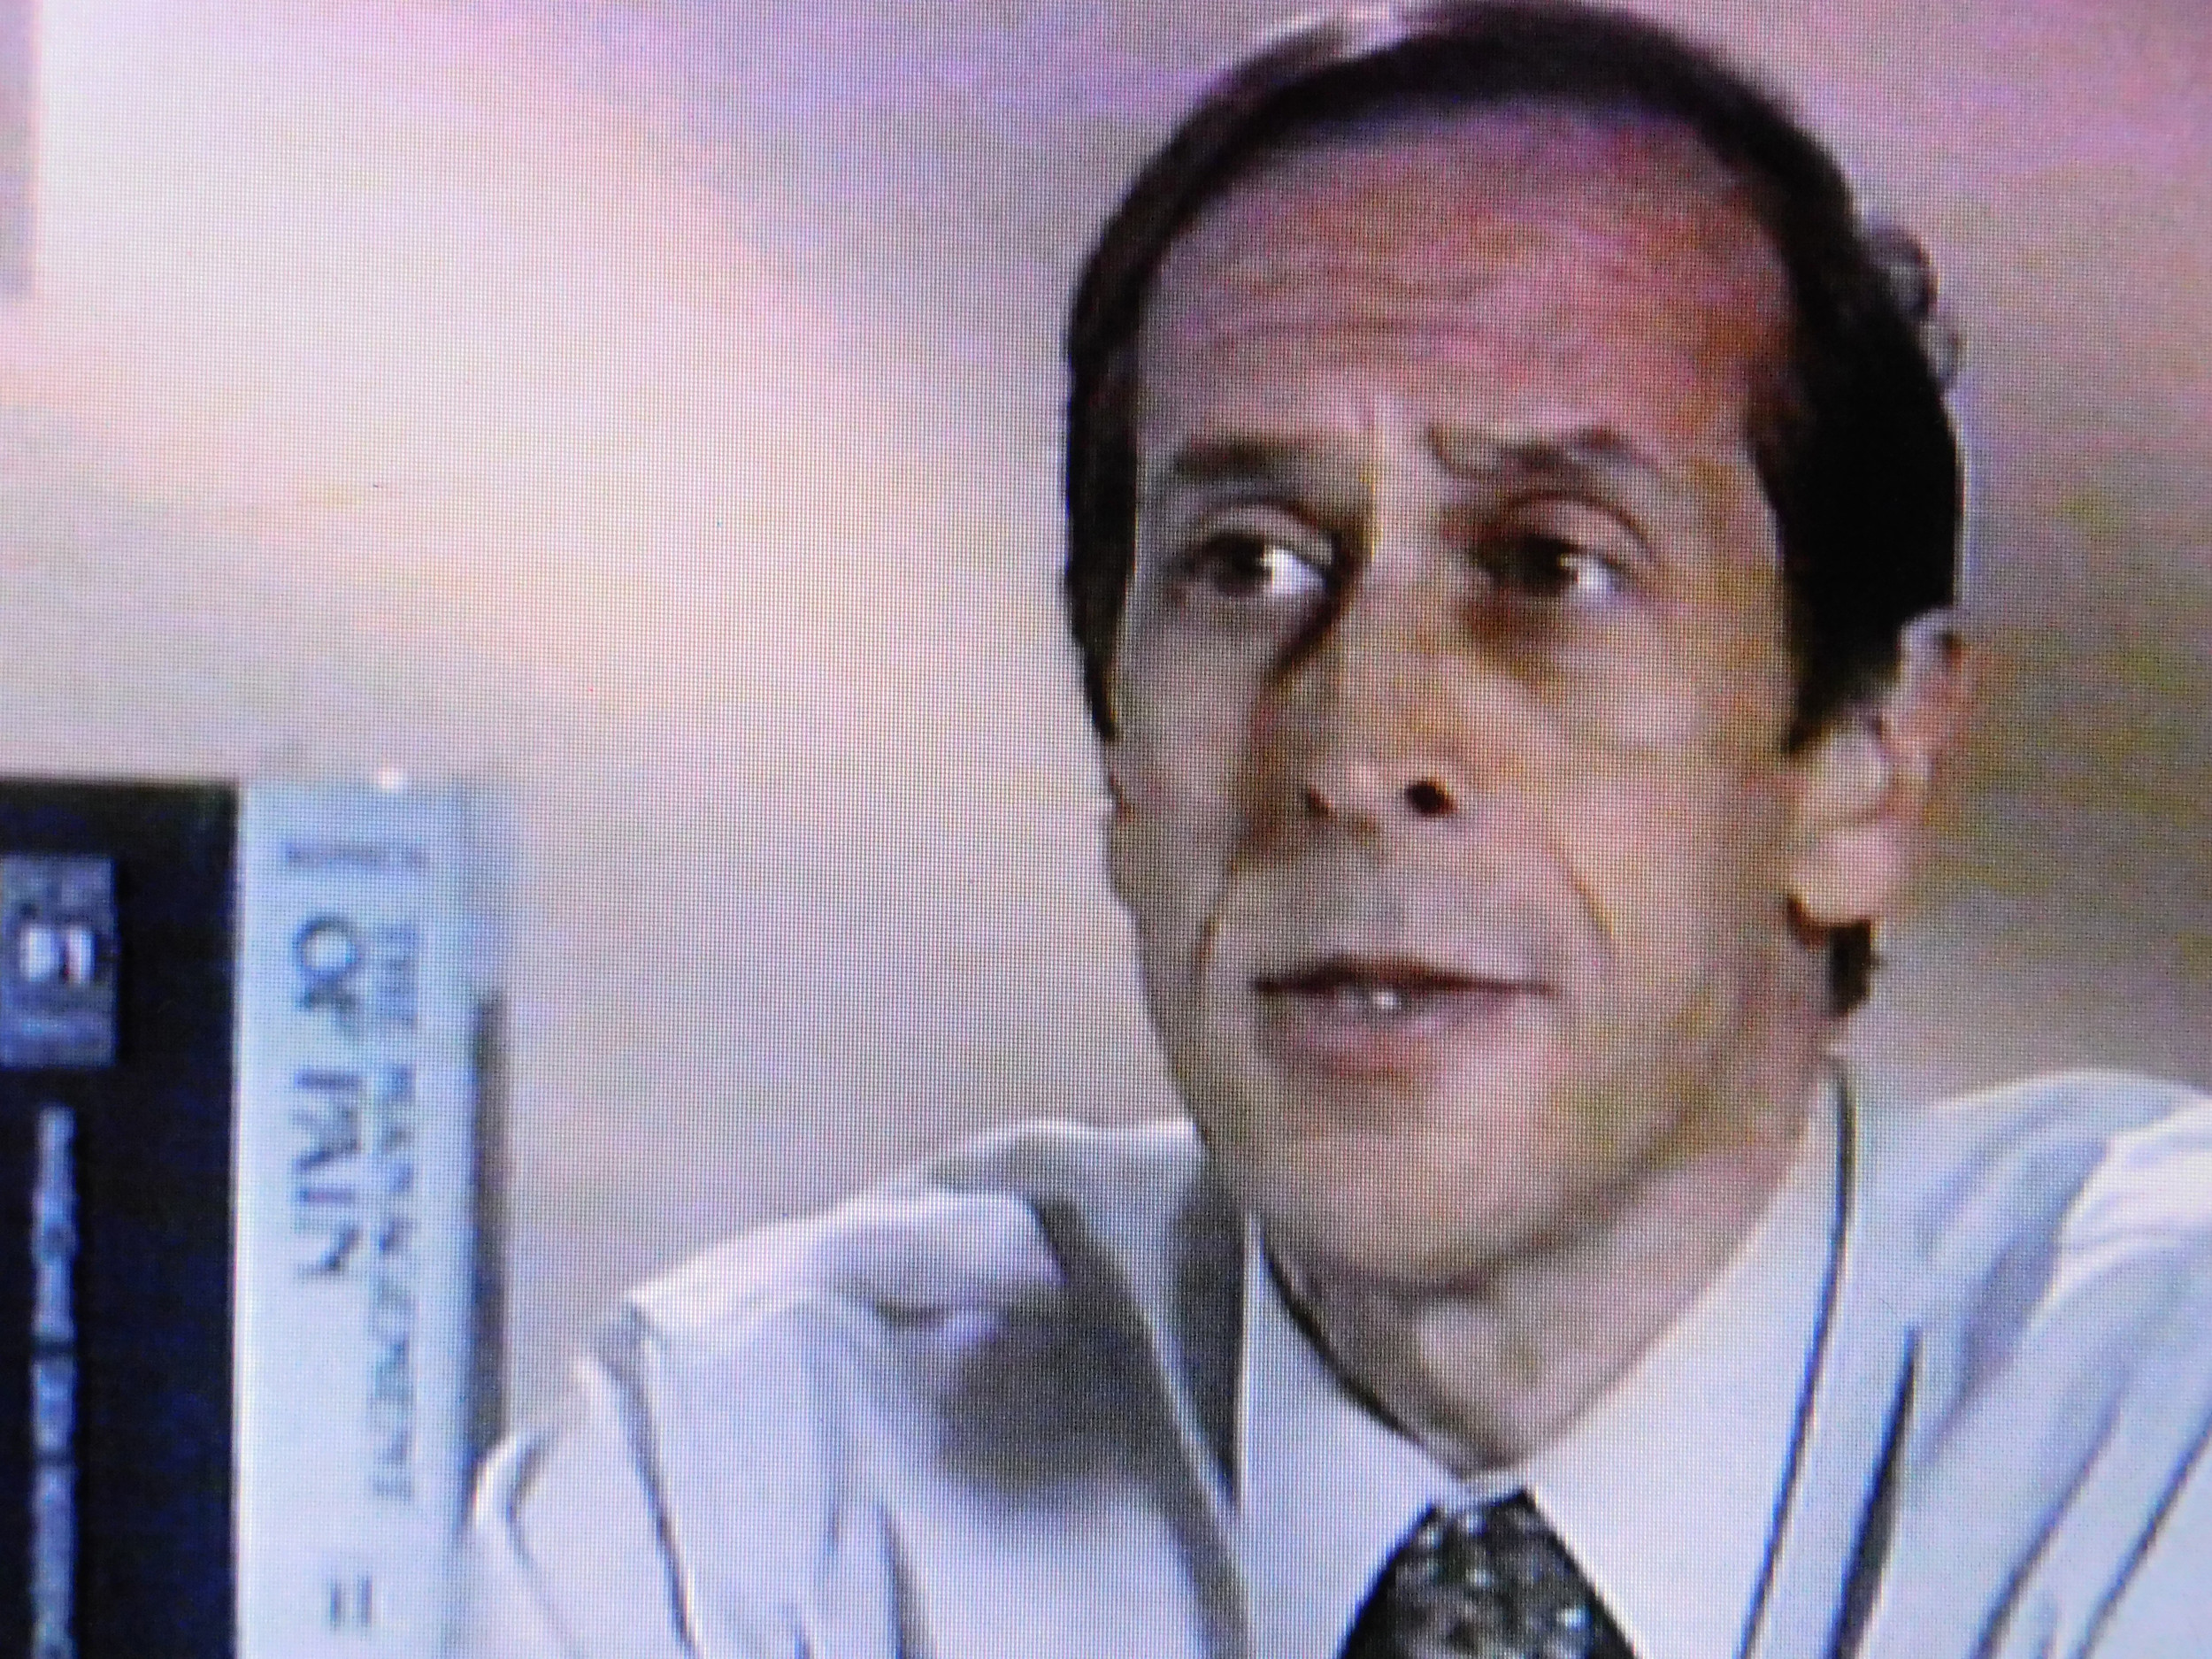 In a Purdue Pharma video that Belfiore and his attorney plan to use as part of their defense, Dr. Alan Spanos, pictured in a still from the video, extols the virtues of opioid pain medications such as Oxycontin.